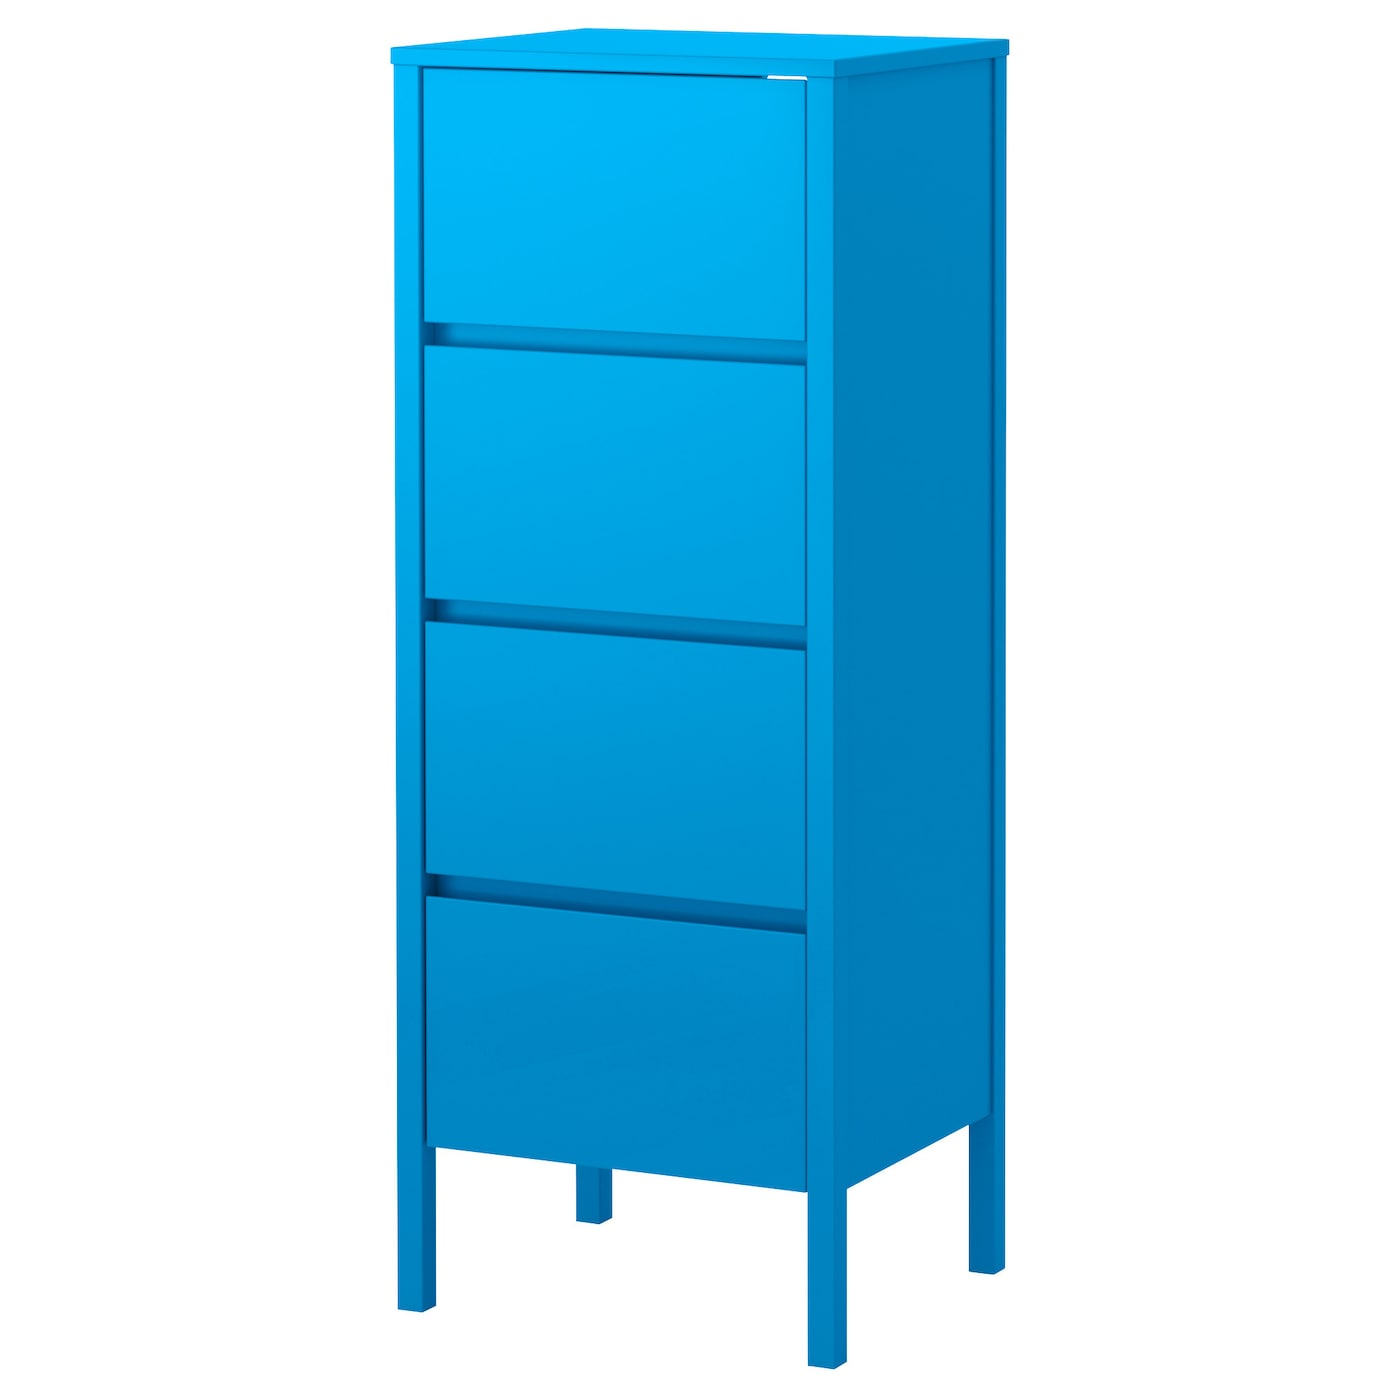 nordli chest of 4 drawers blue 48x125 cm ikea. Black Bedroom Furniture Sets. Home Design Ideas